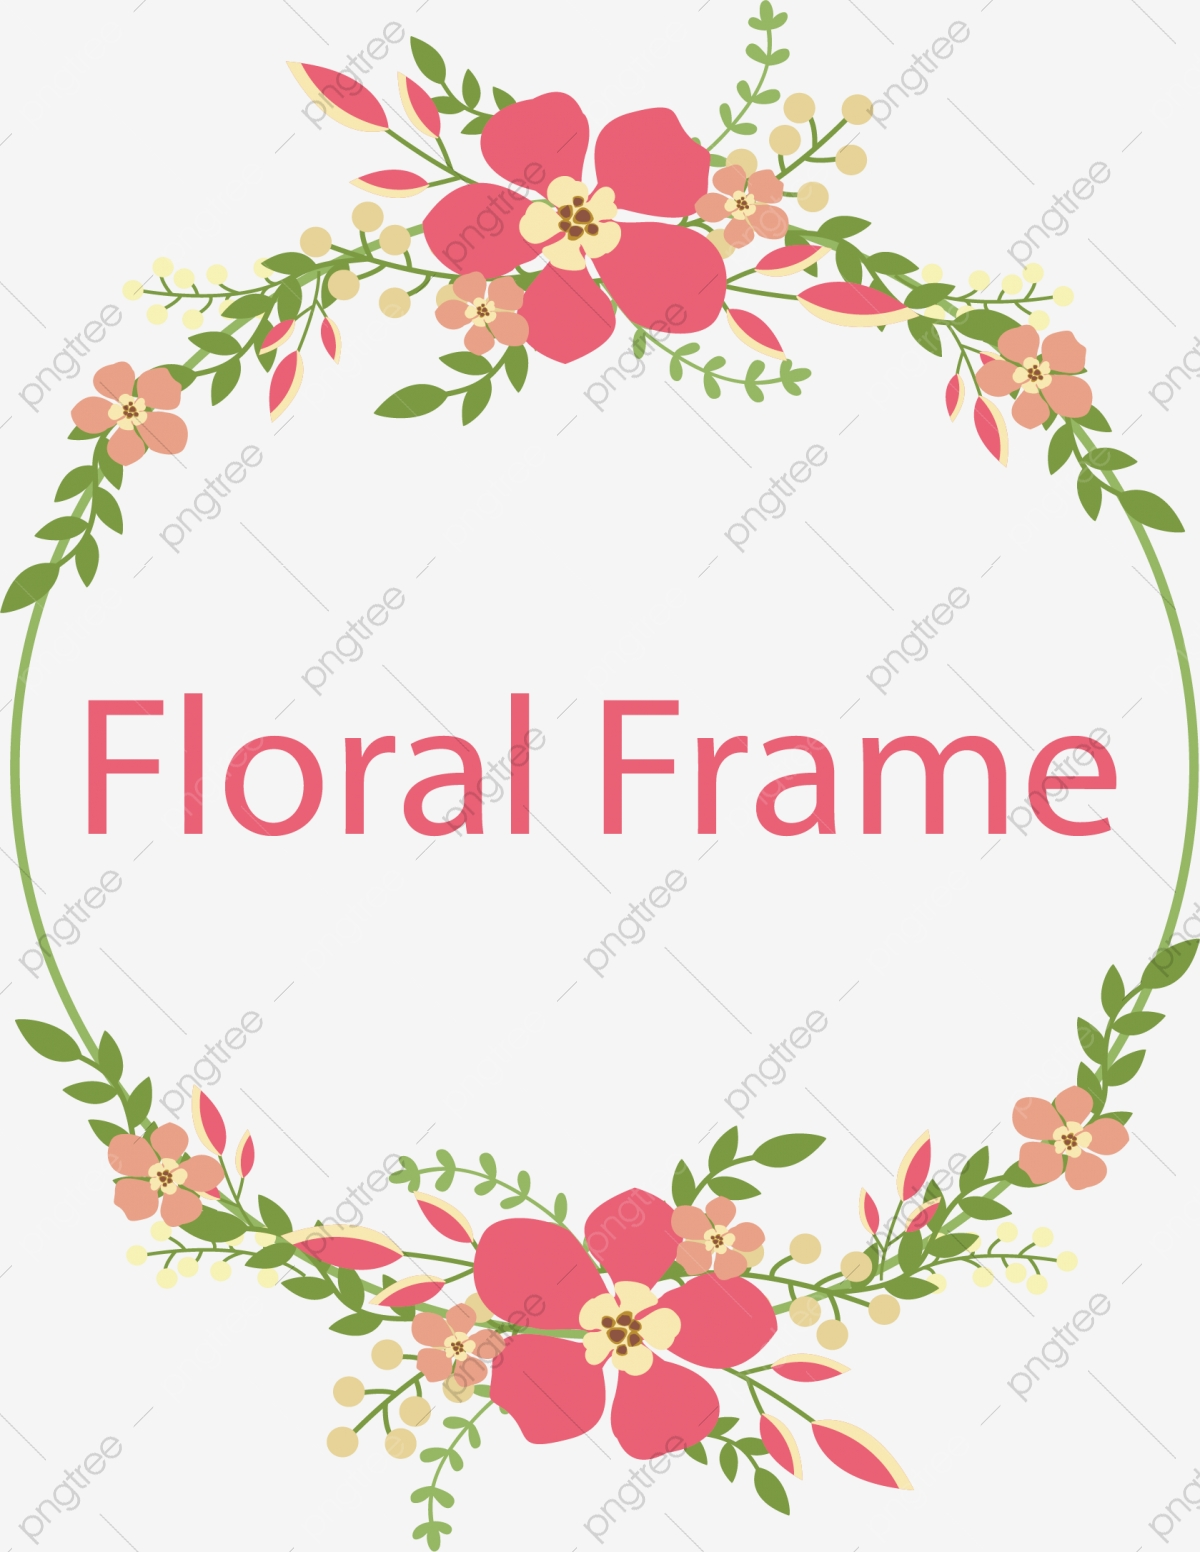 Flower Frame Vector, Wreath, Hand Painted, Flowers PNG and Vector.